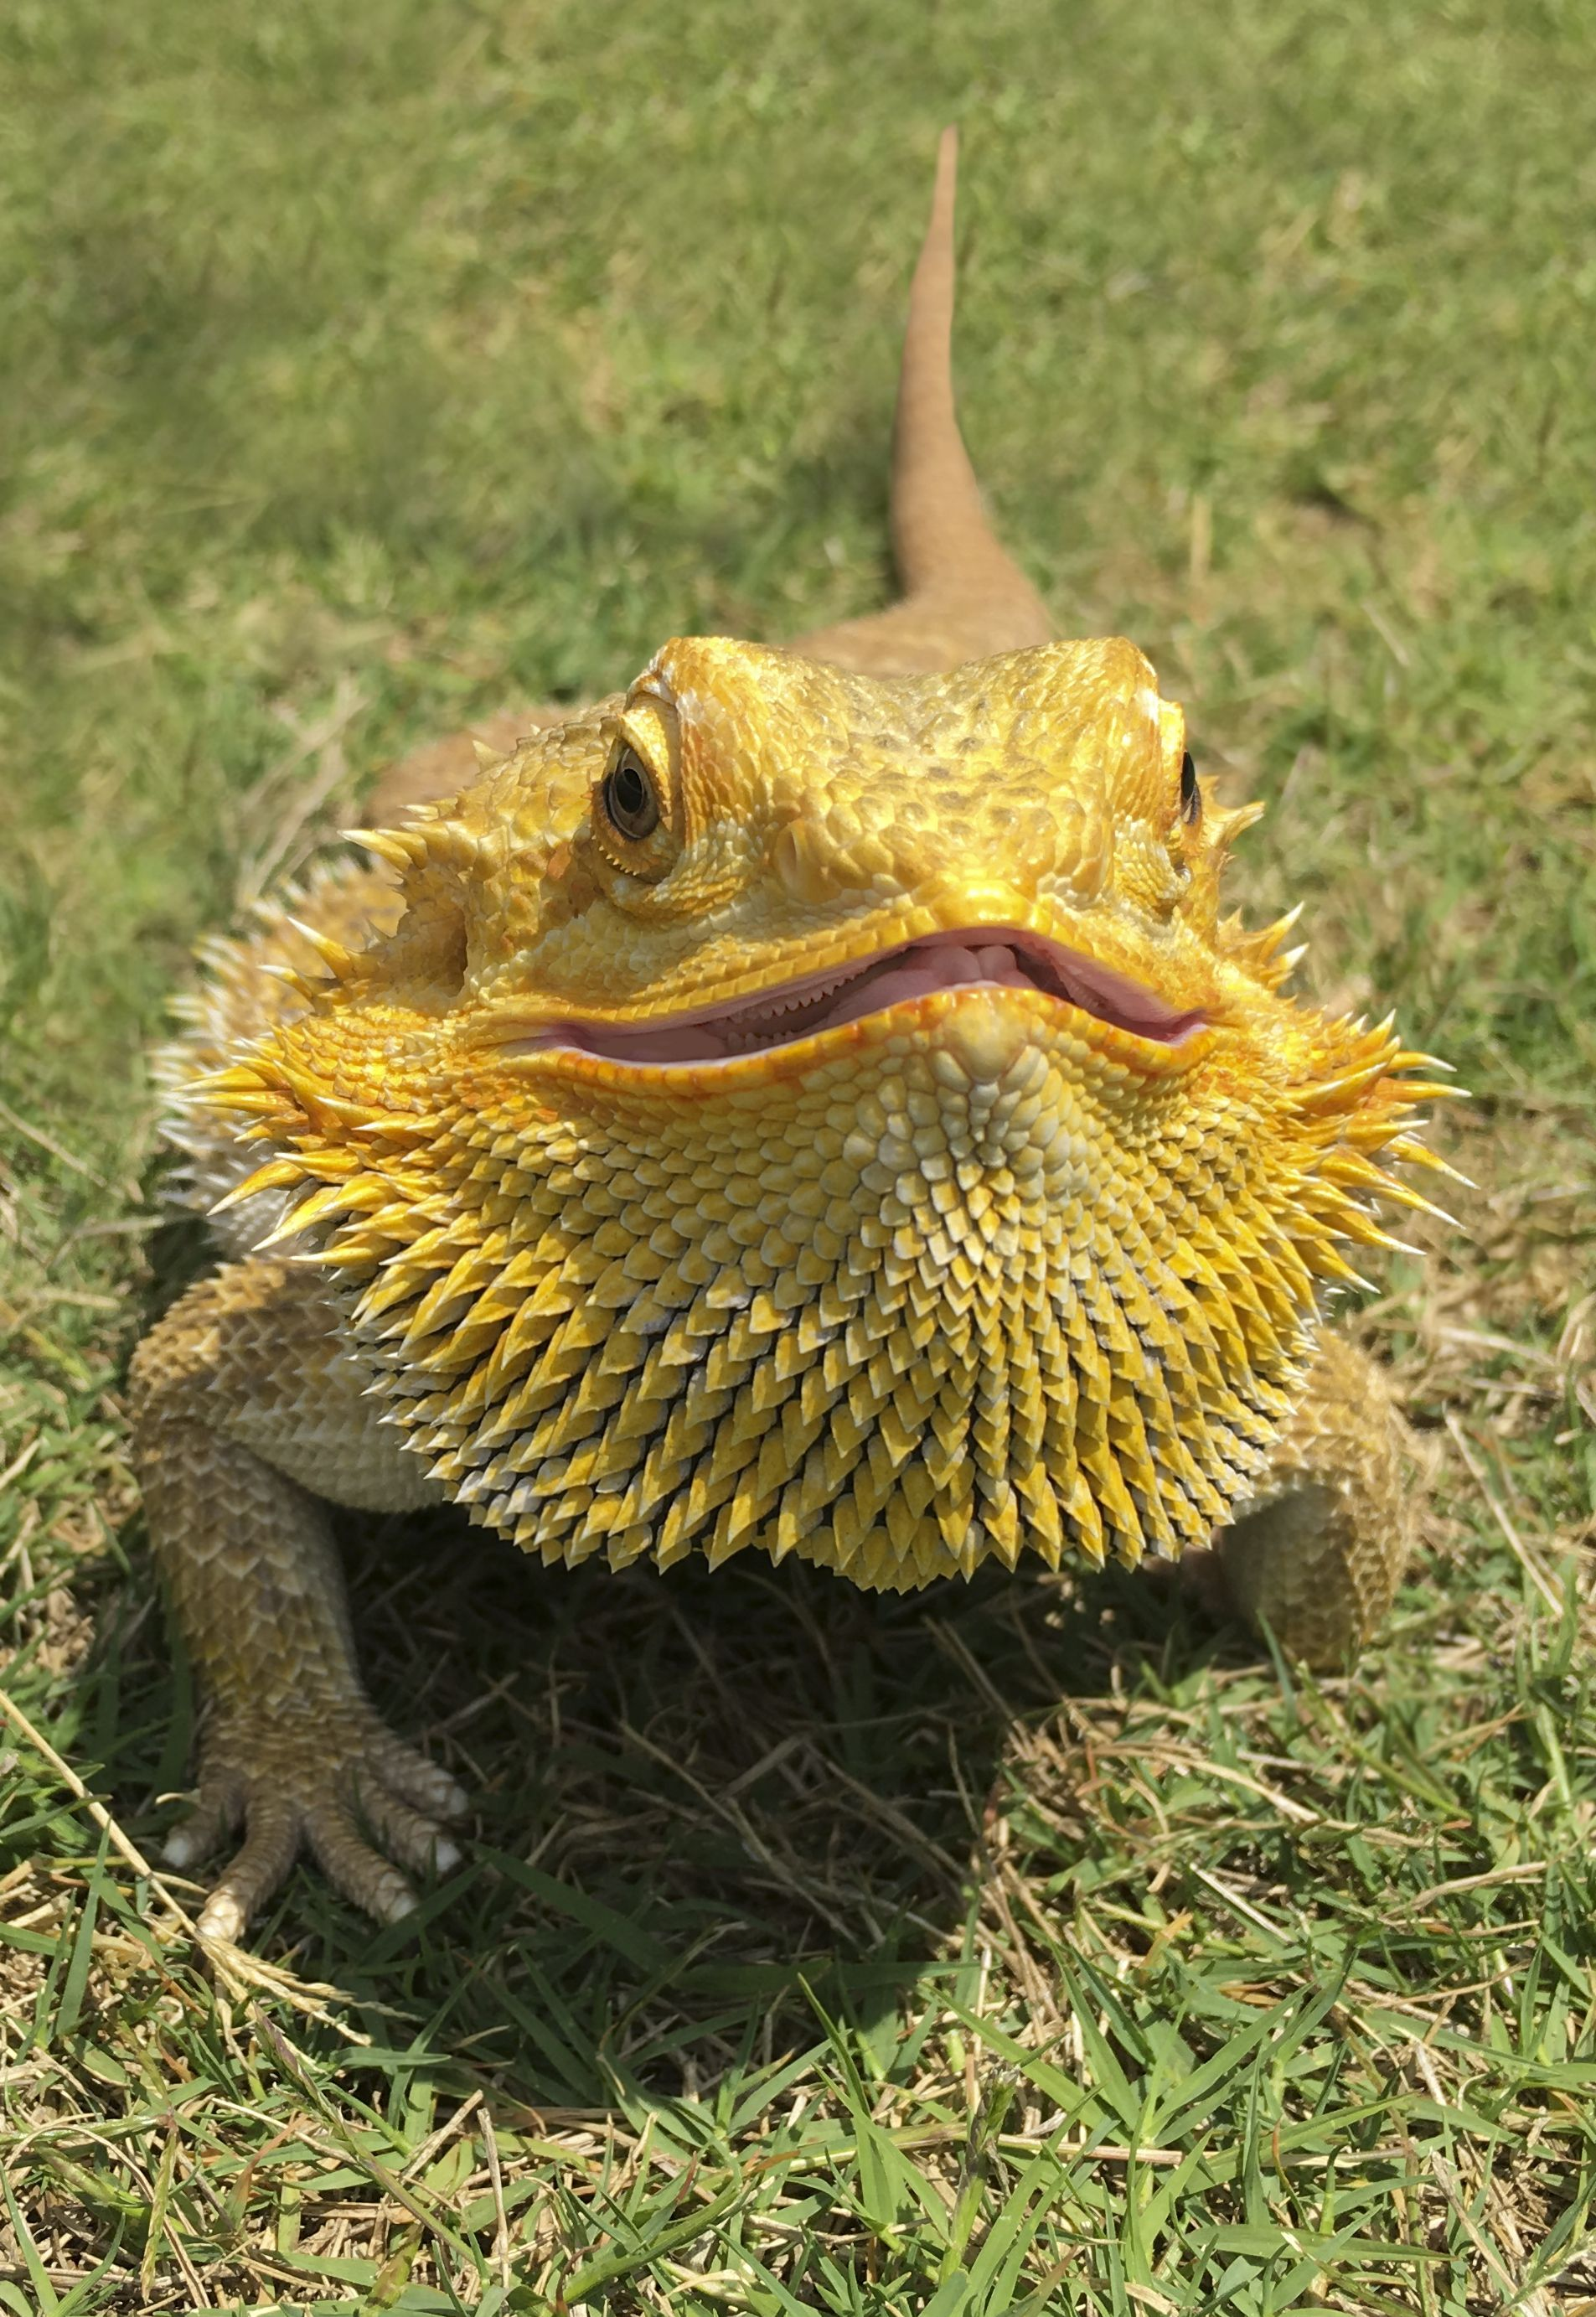 p>Bearded dragons get their name from the ability to